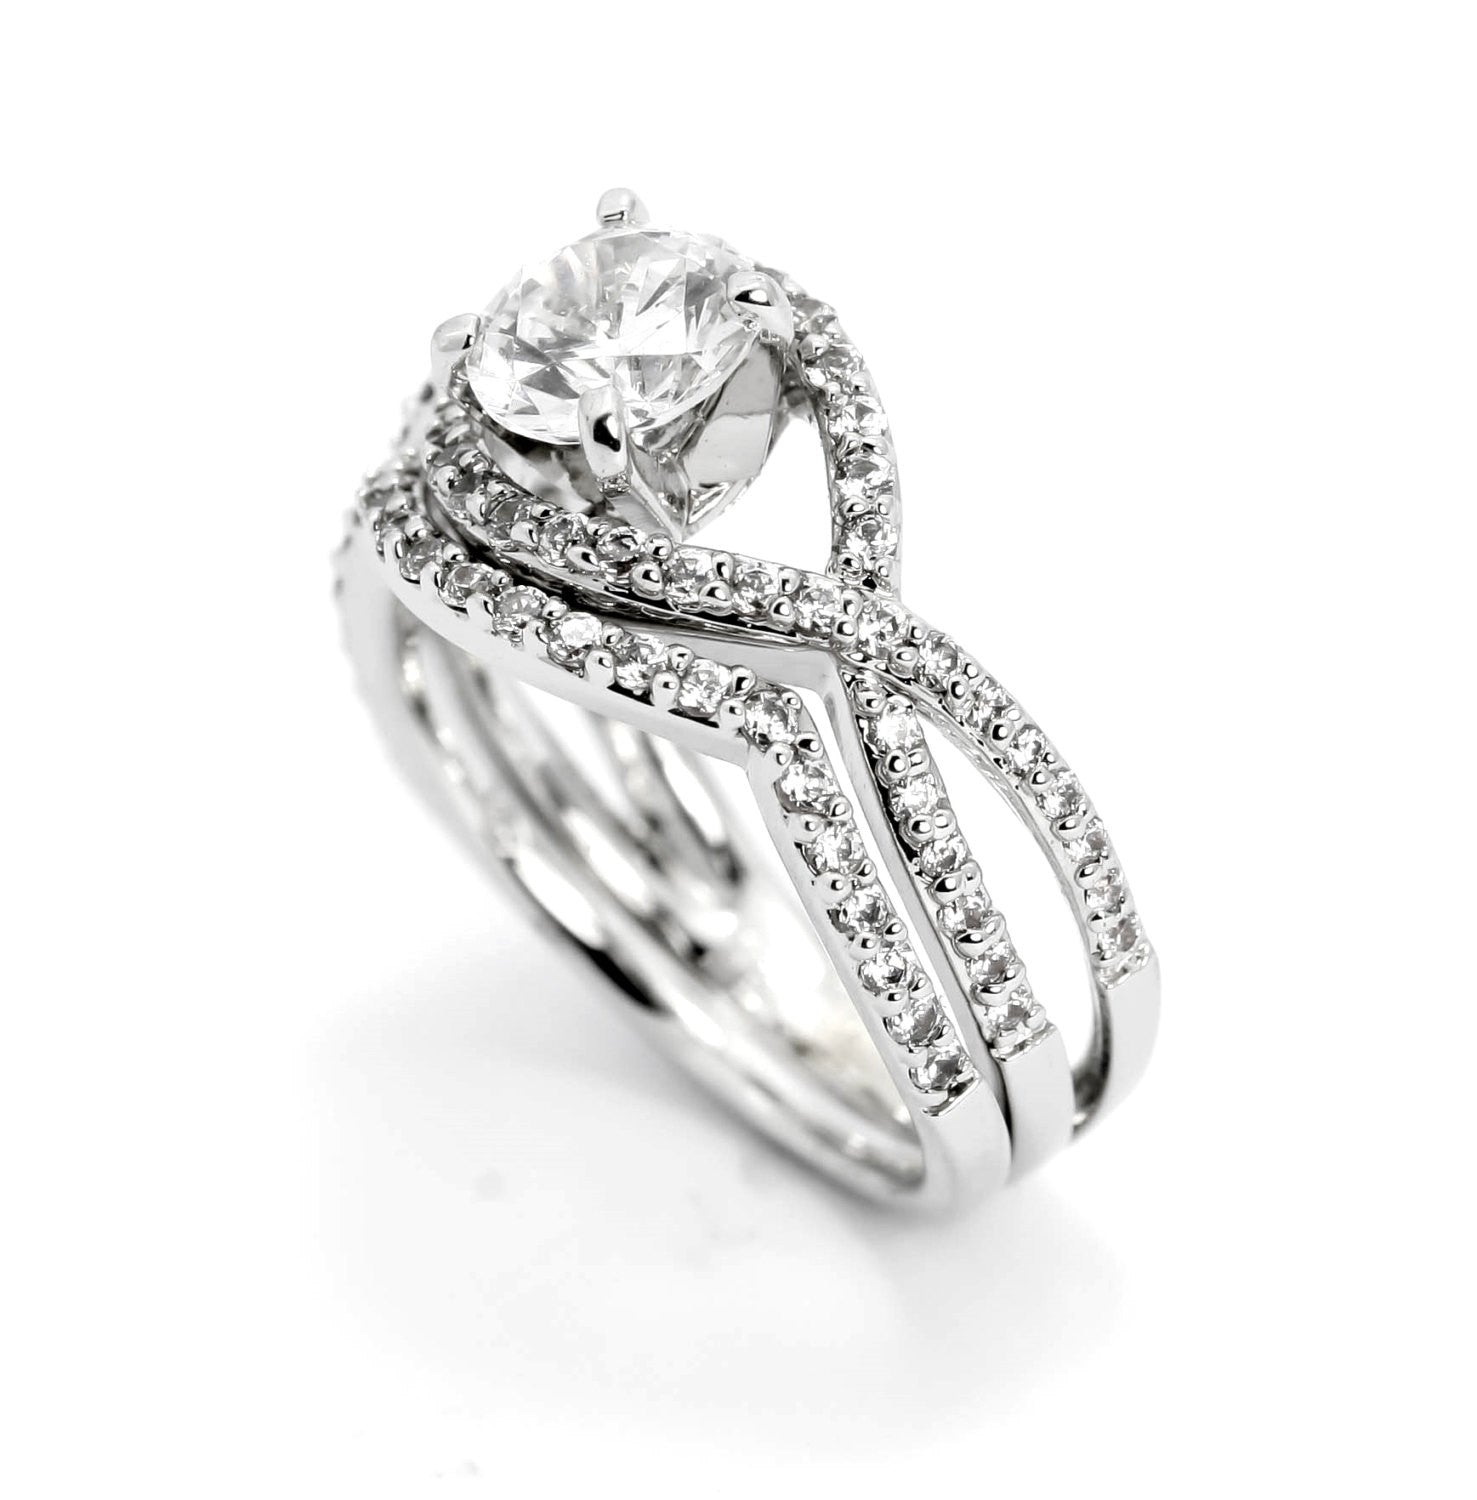 Engagement Ring & Wedding Set, Unique Infinity Style With .75 Carat Diamonds, Split Shank, Semi Mount For 1 Carat Center Stone - 85040